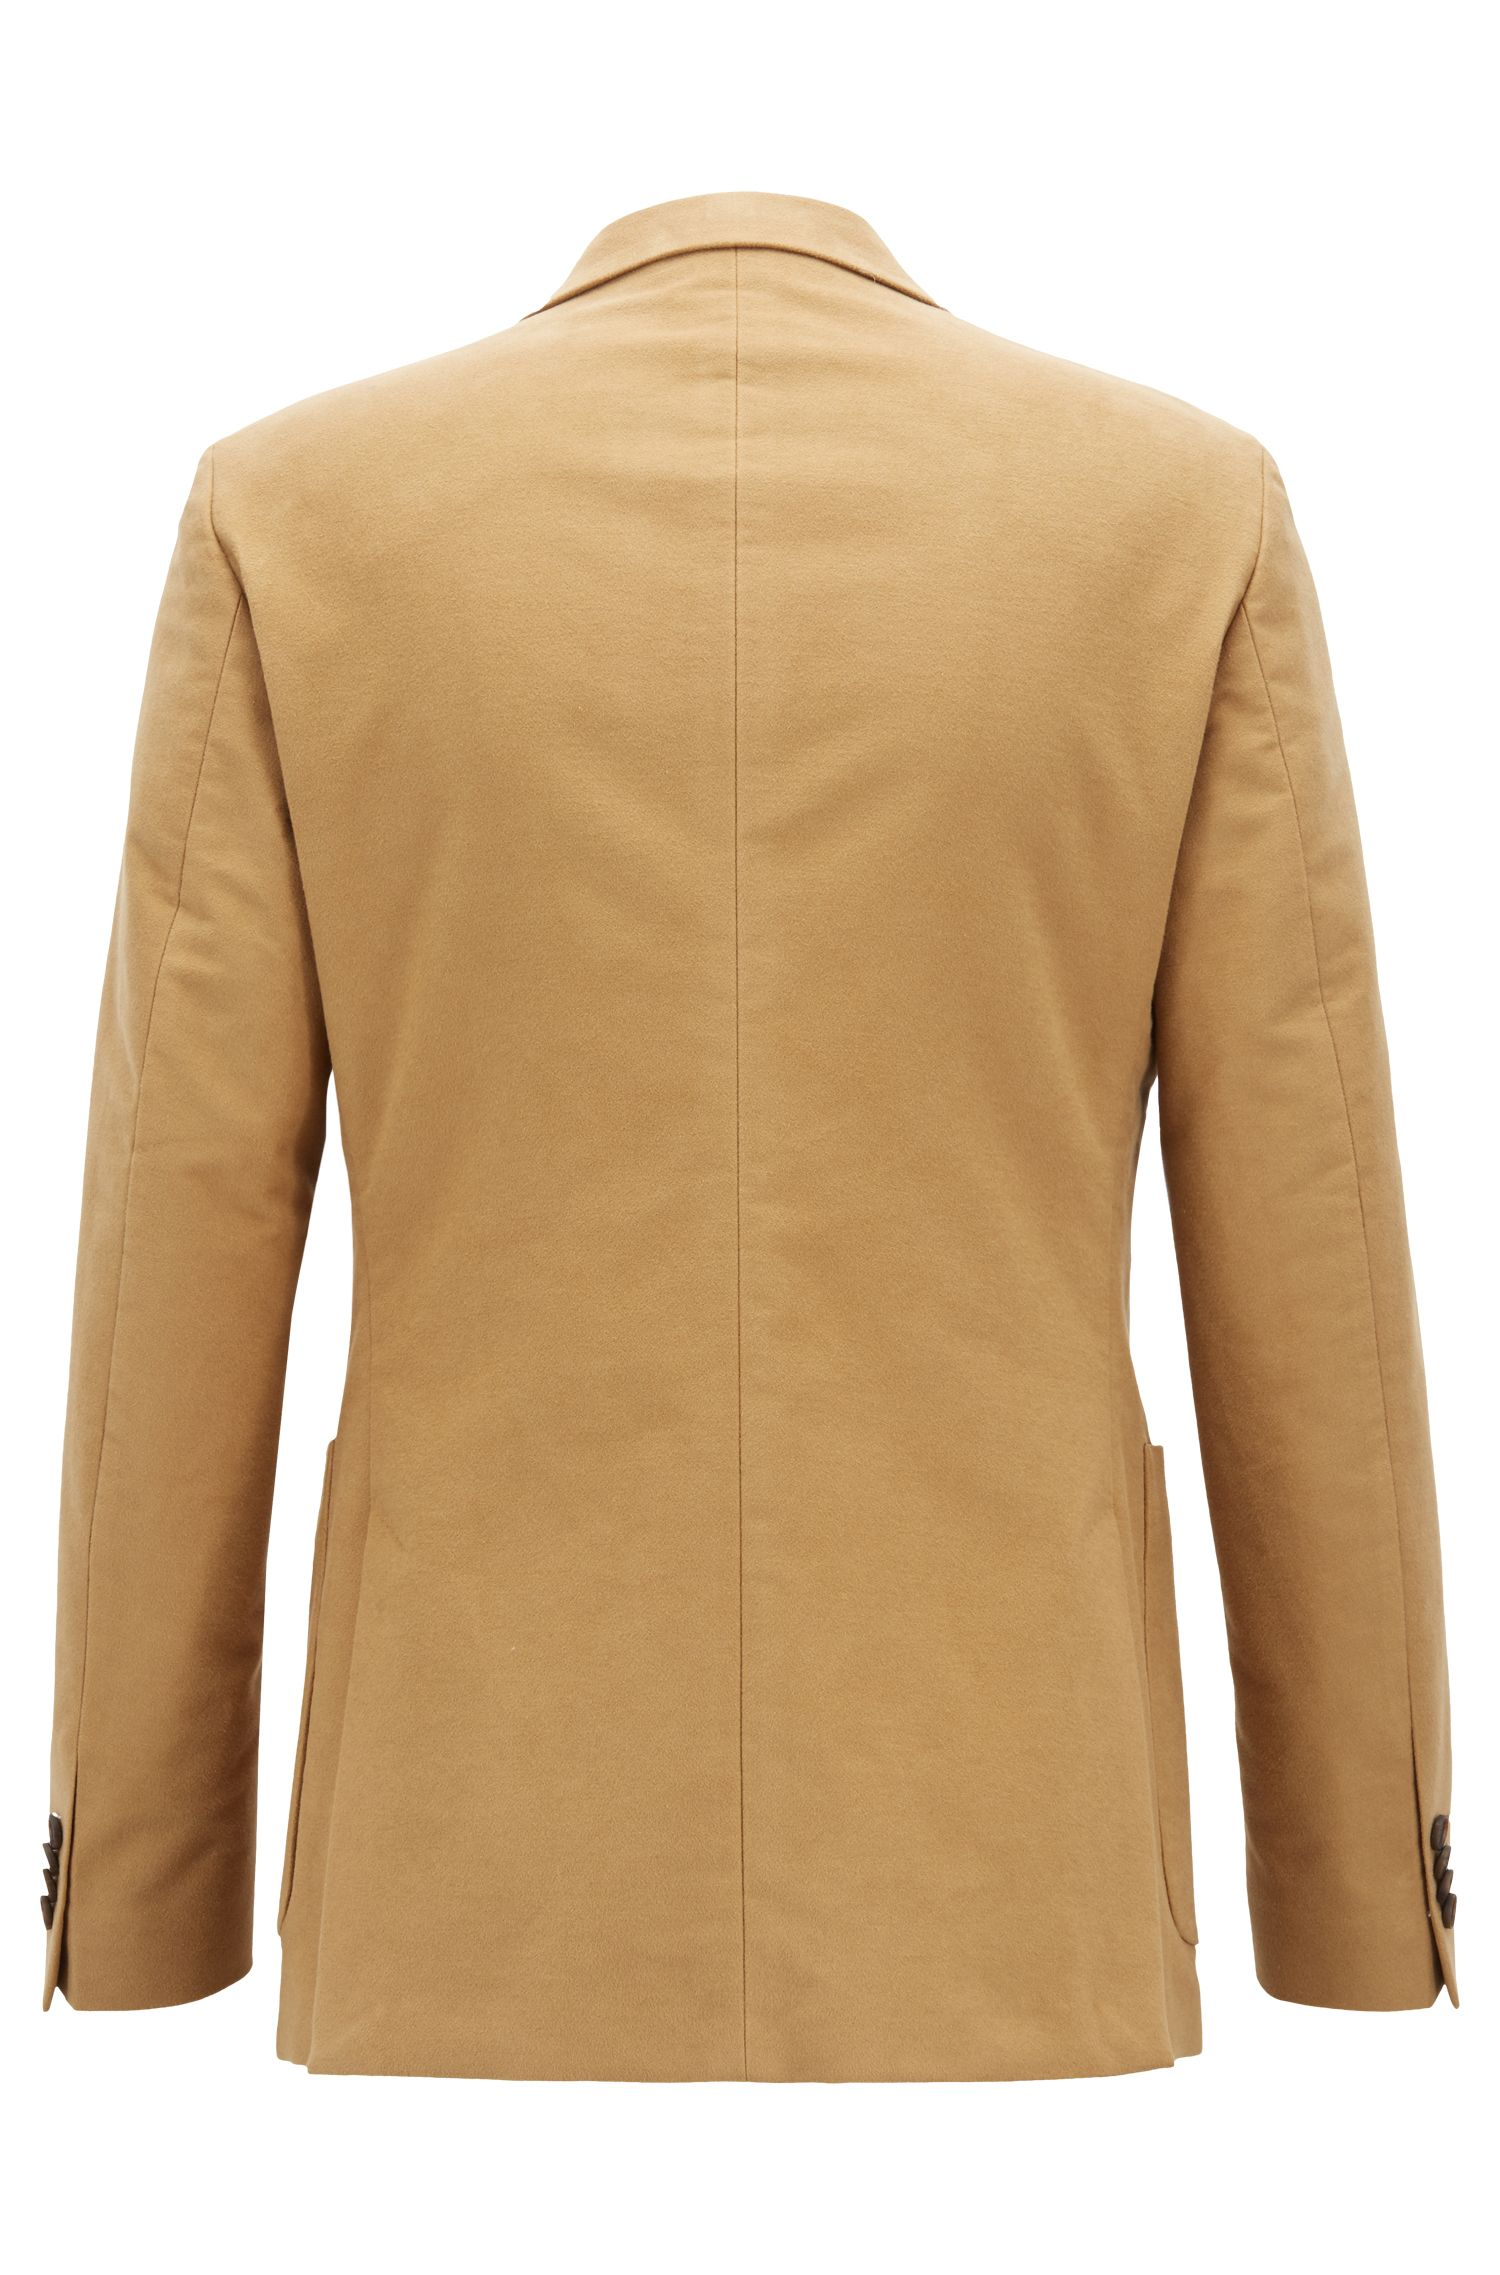 Blazer croisé Slim Fit en coton stretch, Beige